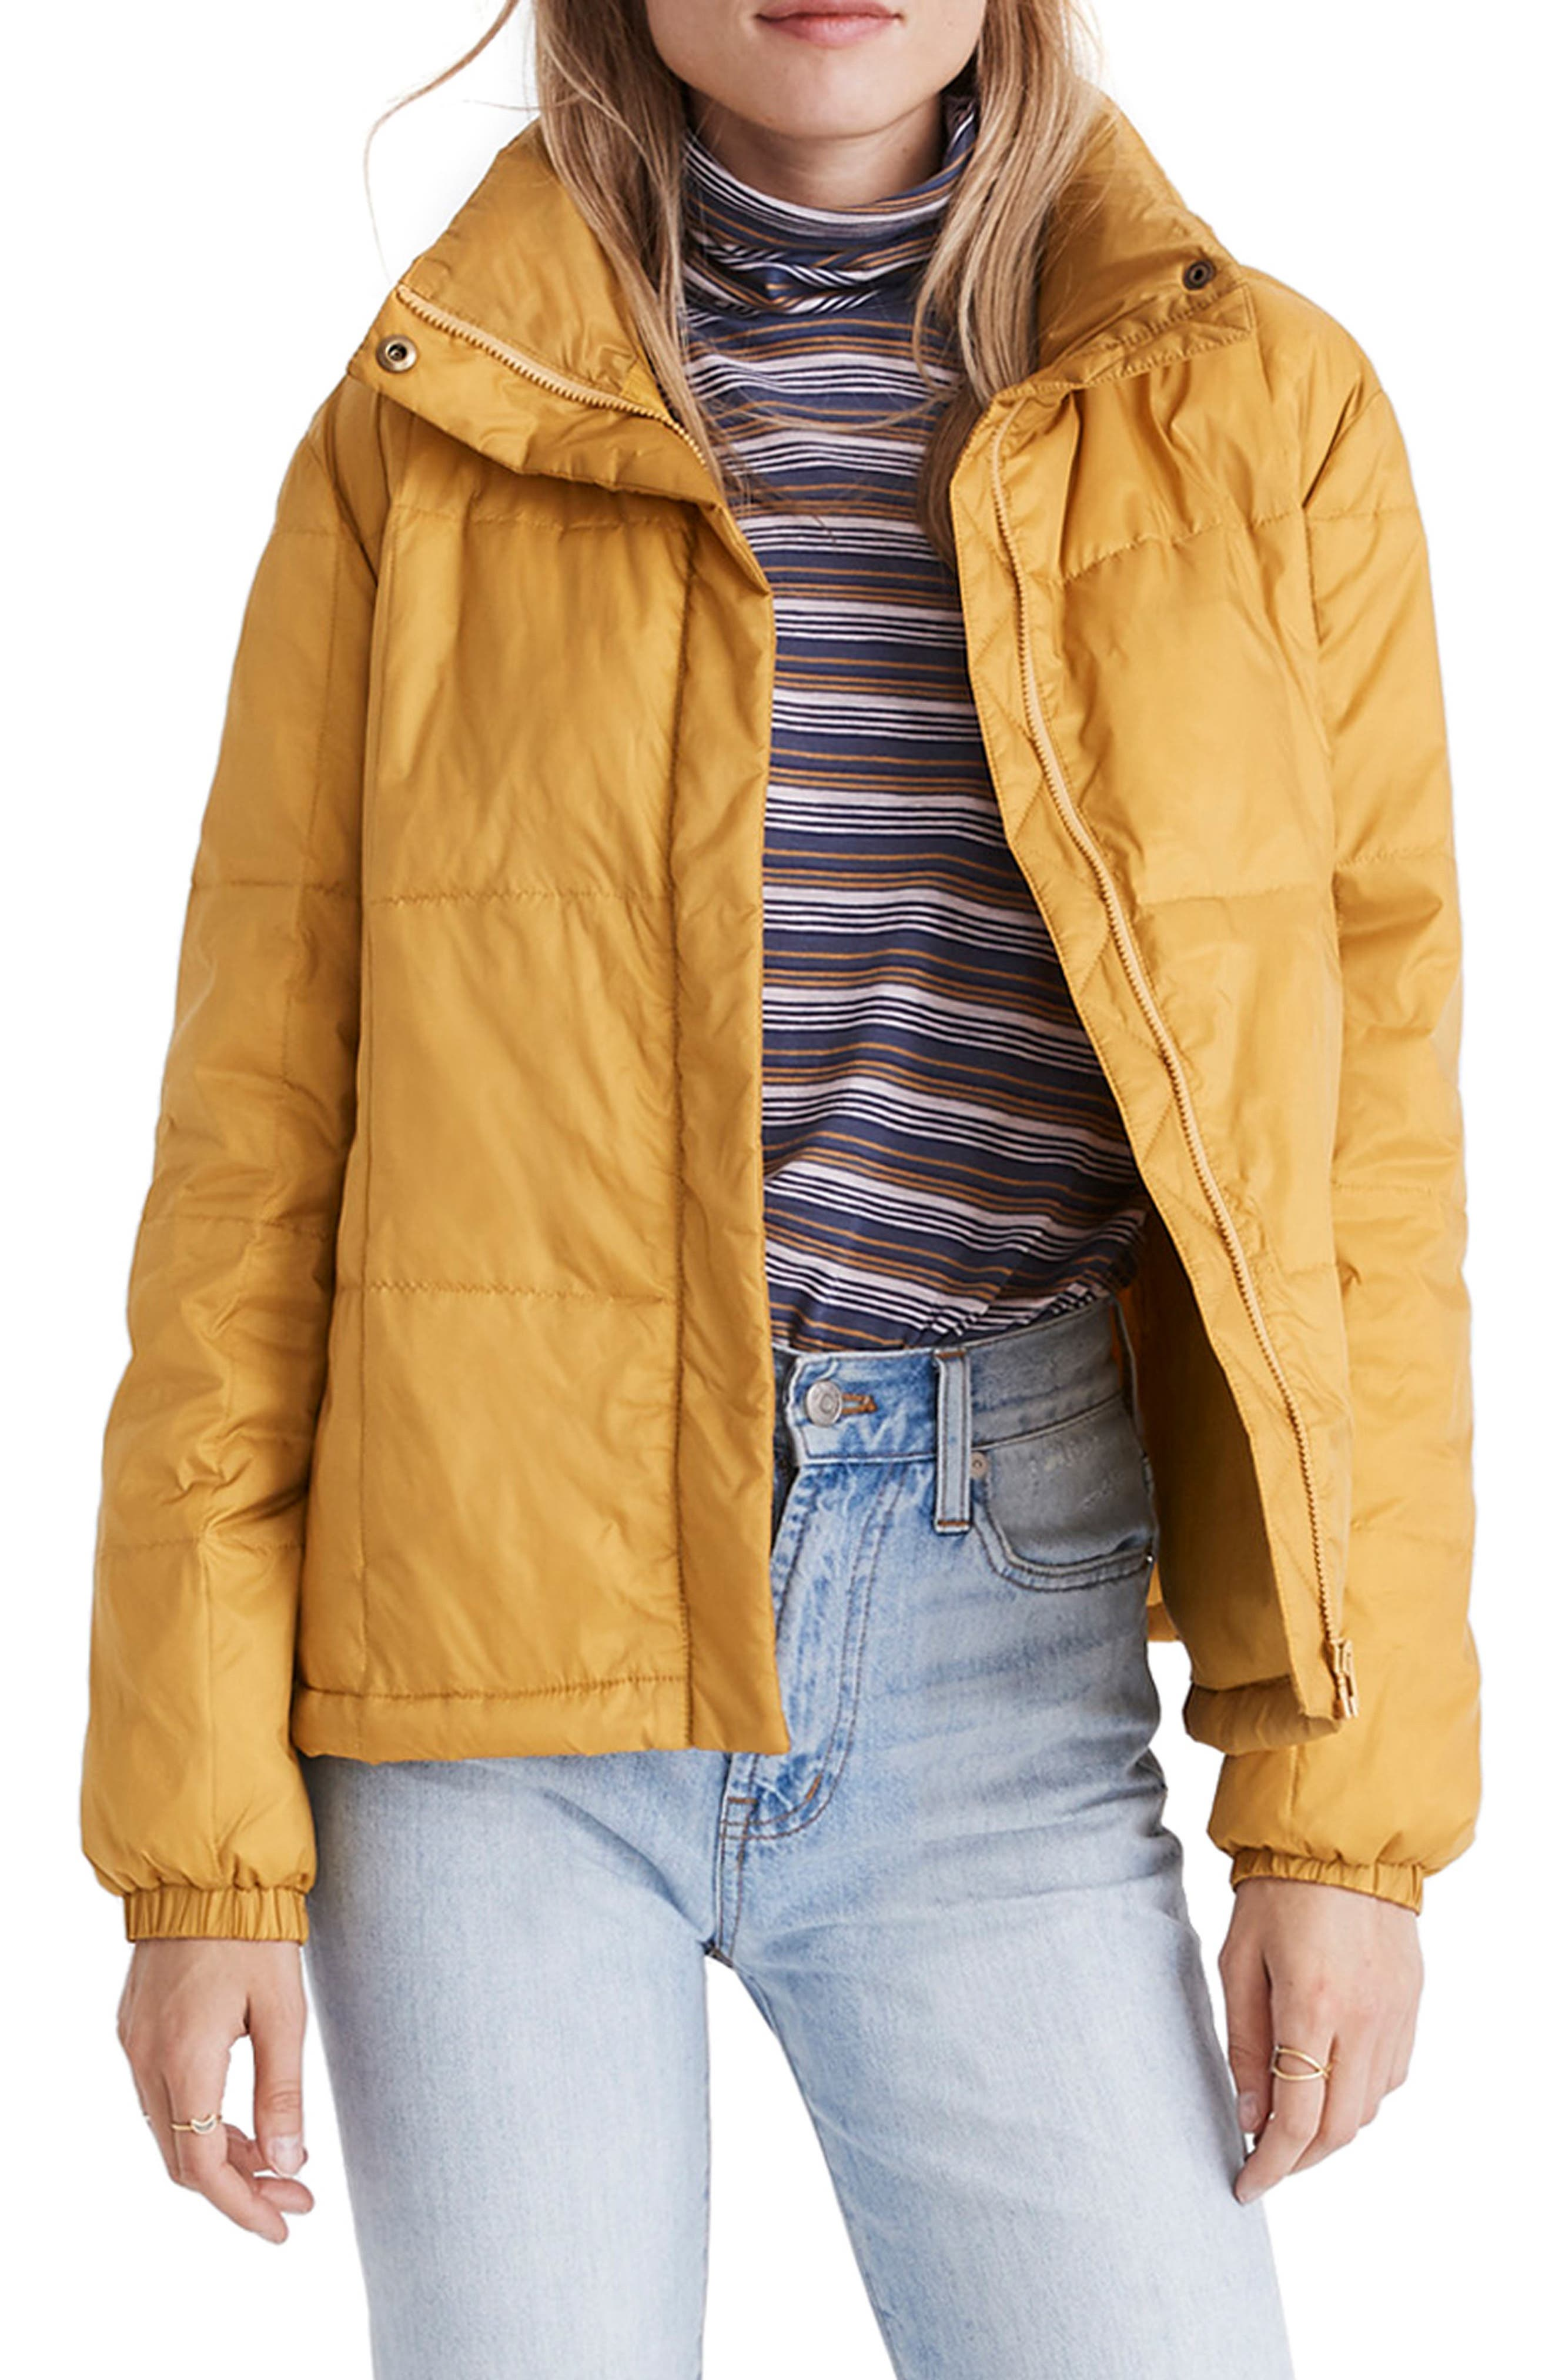 Madewell Travel Buddy Packable Puffer Jacket, Yellow